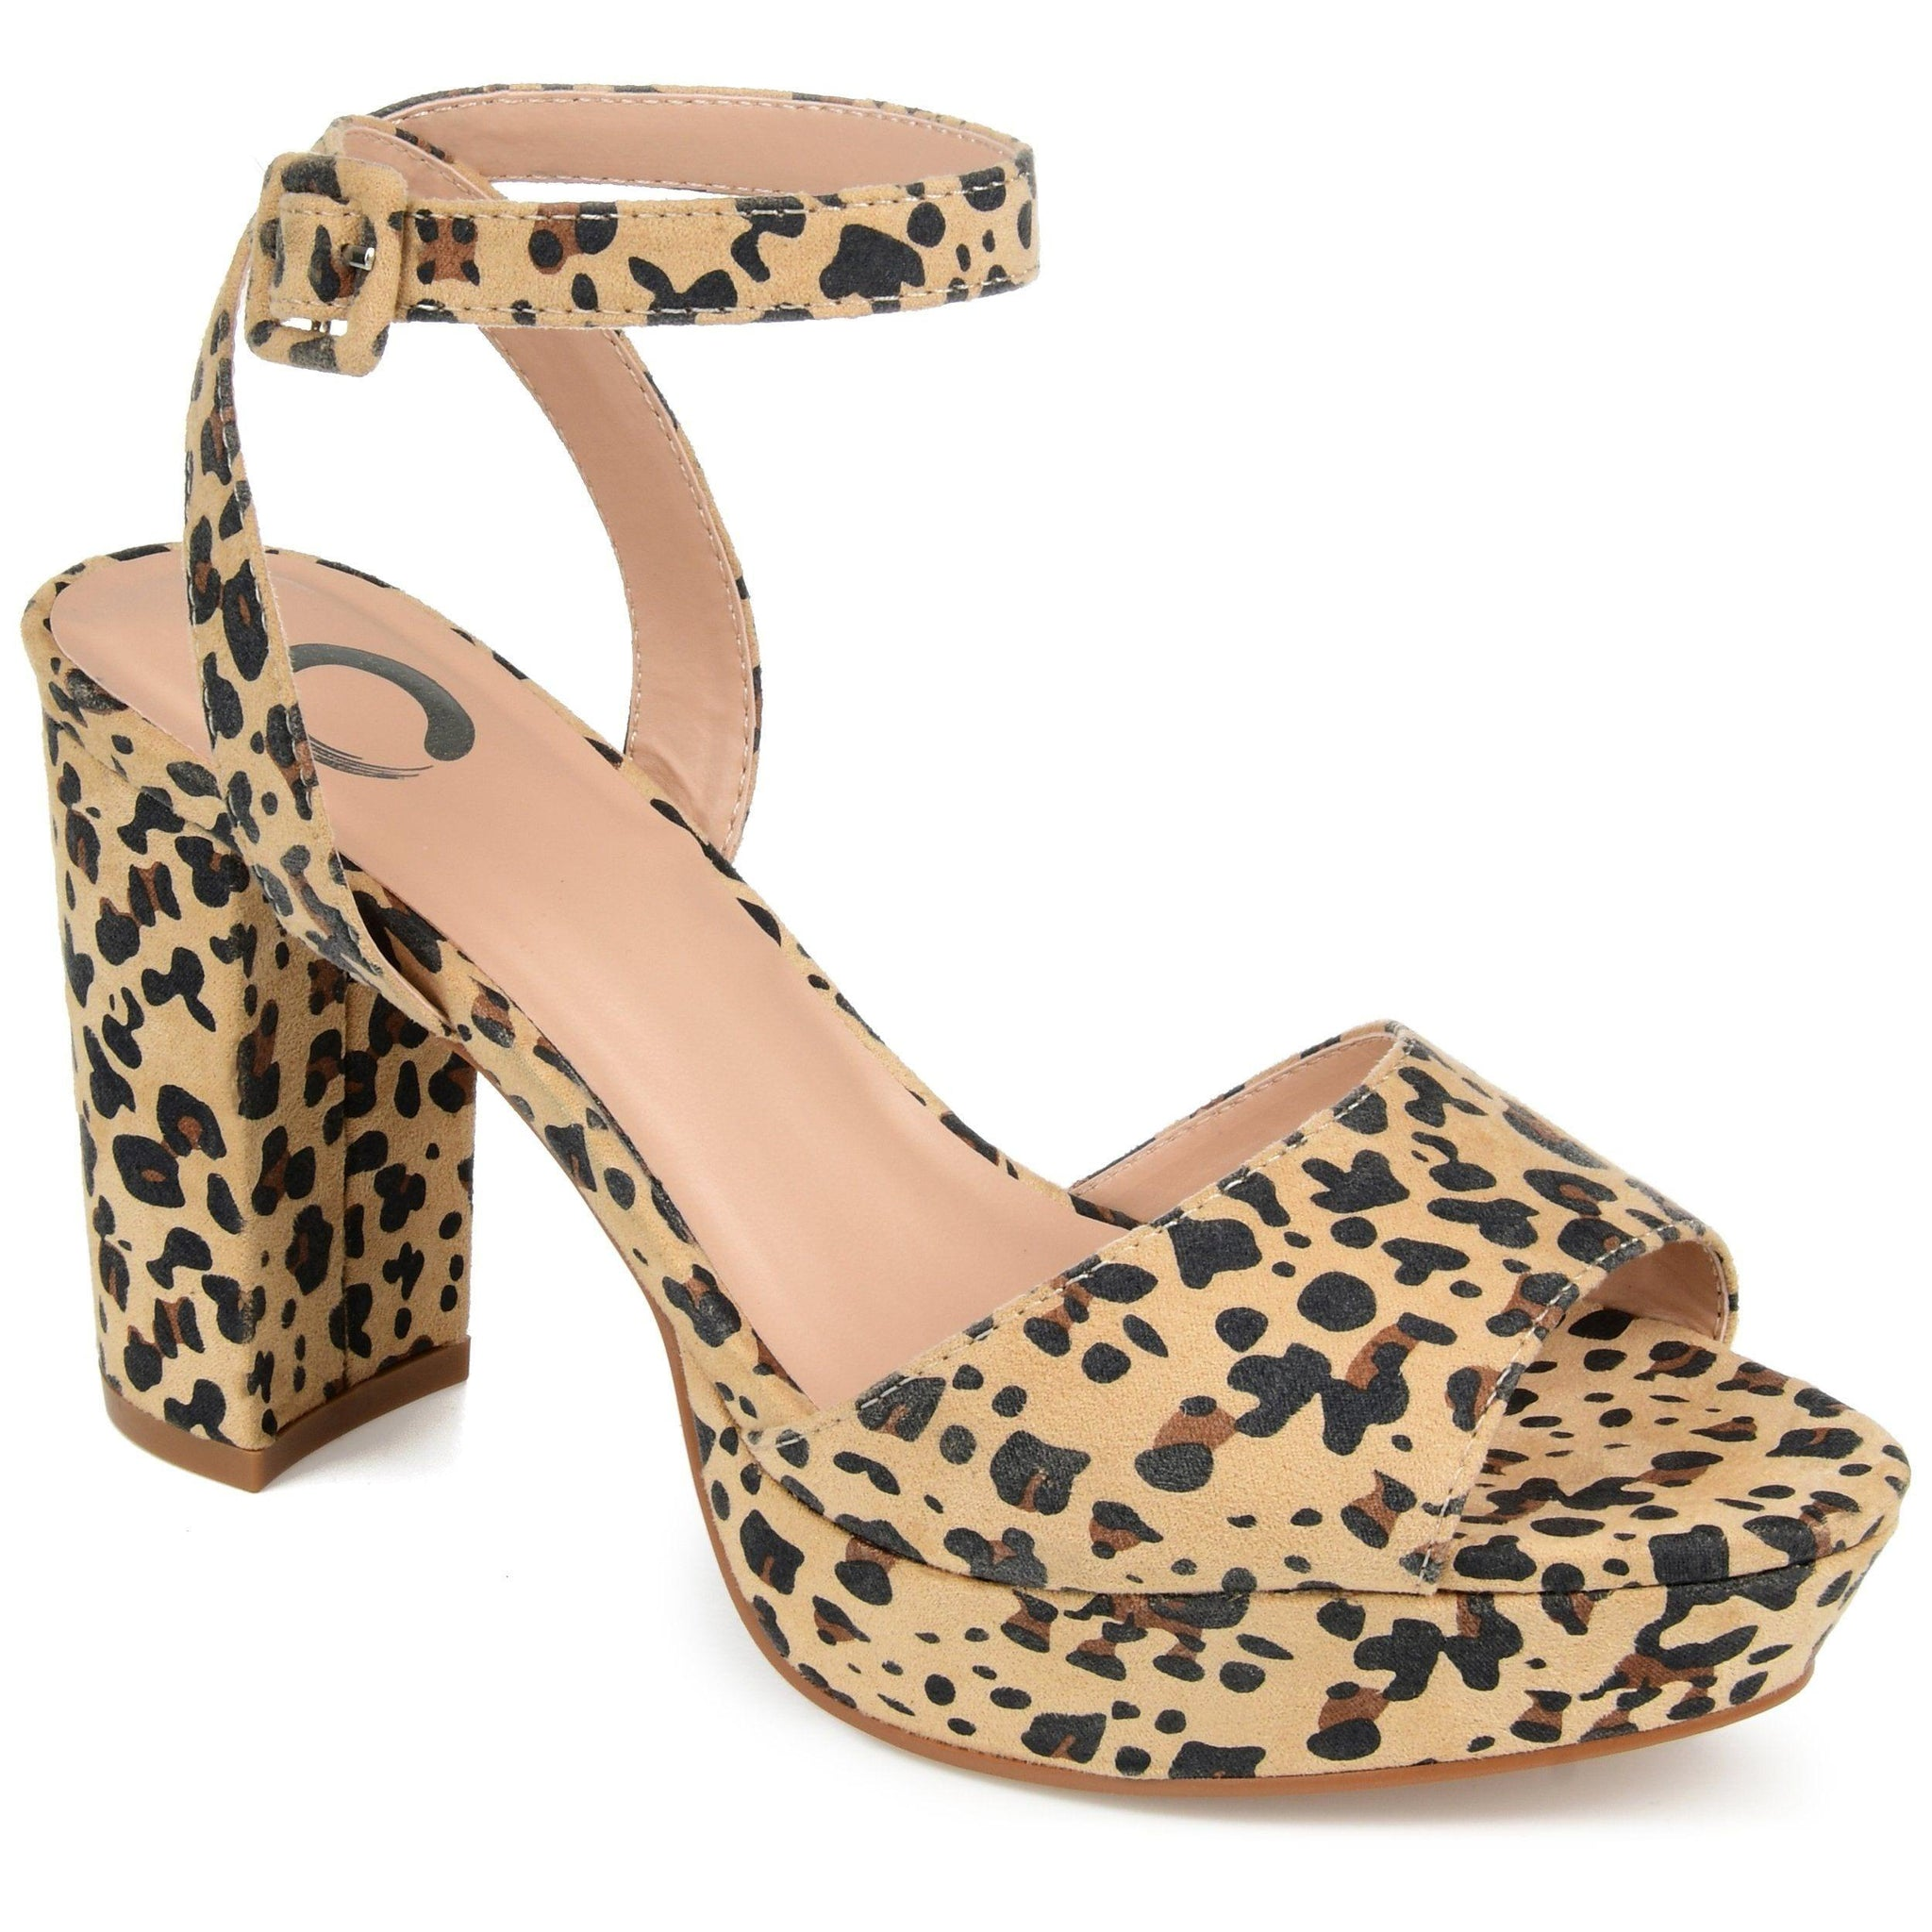 NAIRRI SHOES Journee Collection Leopard 6